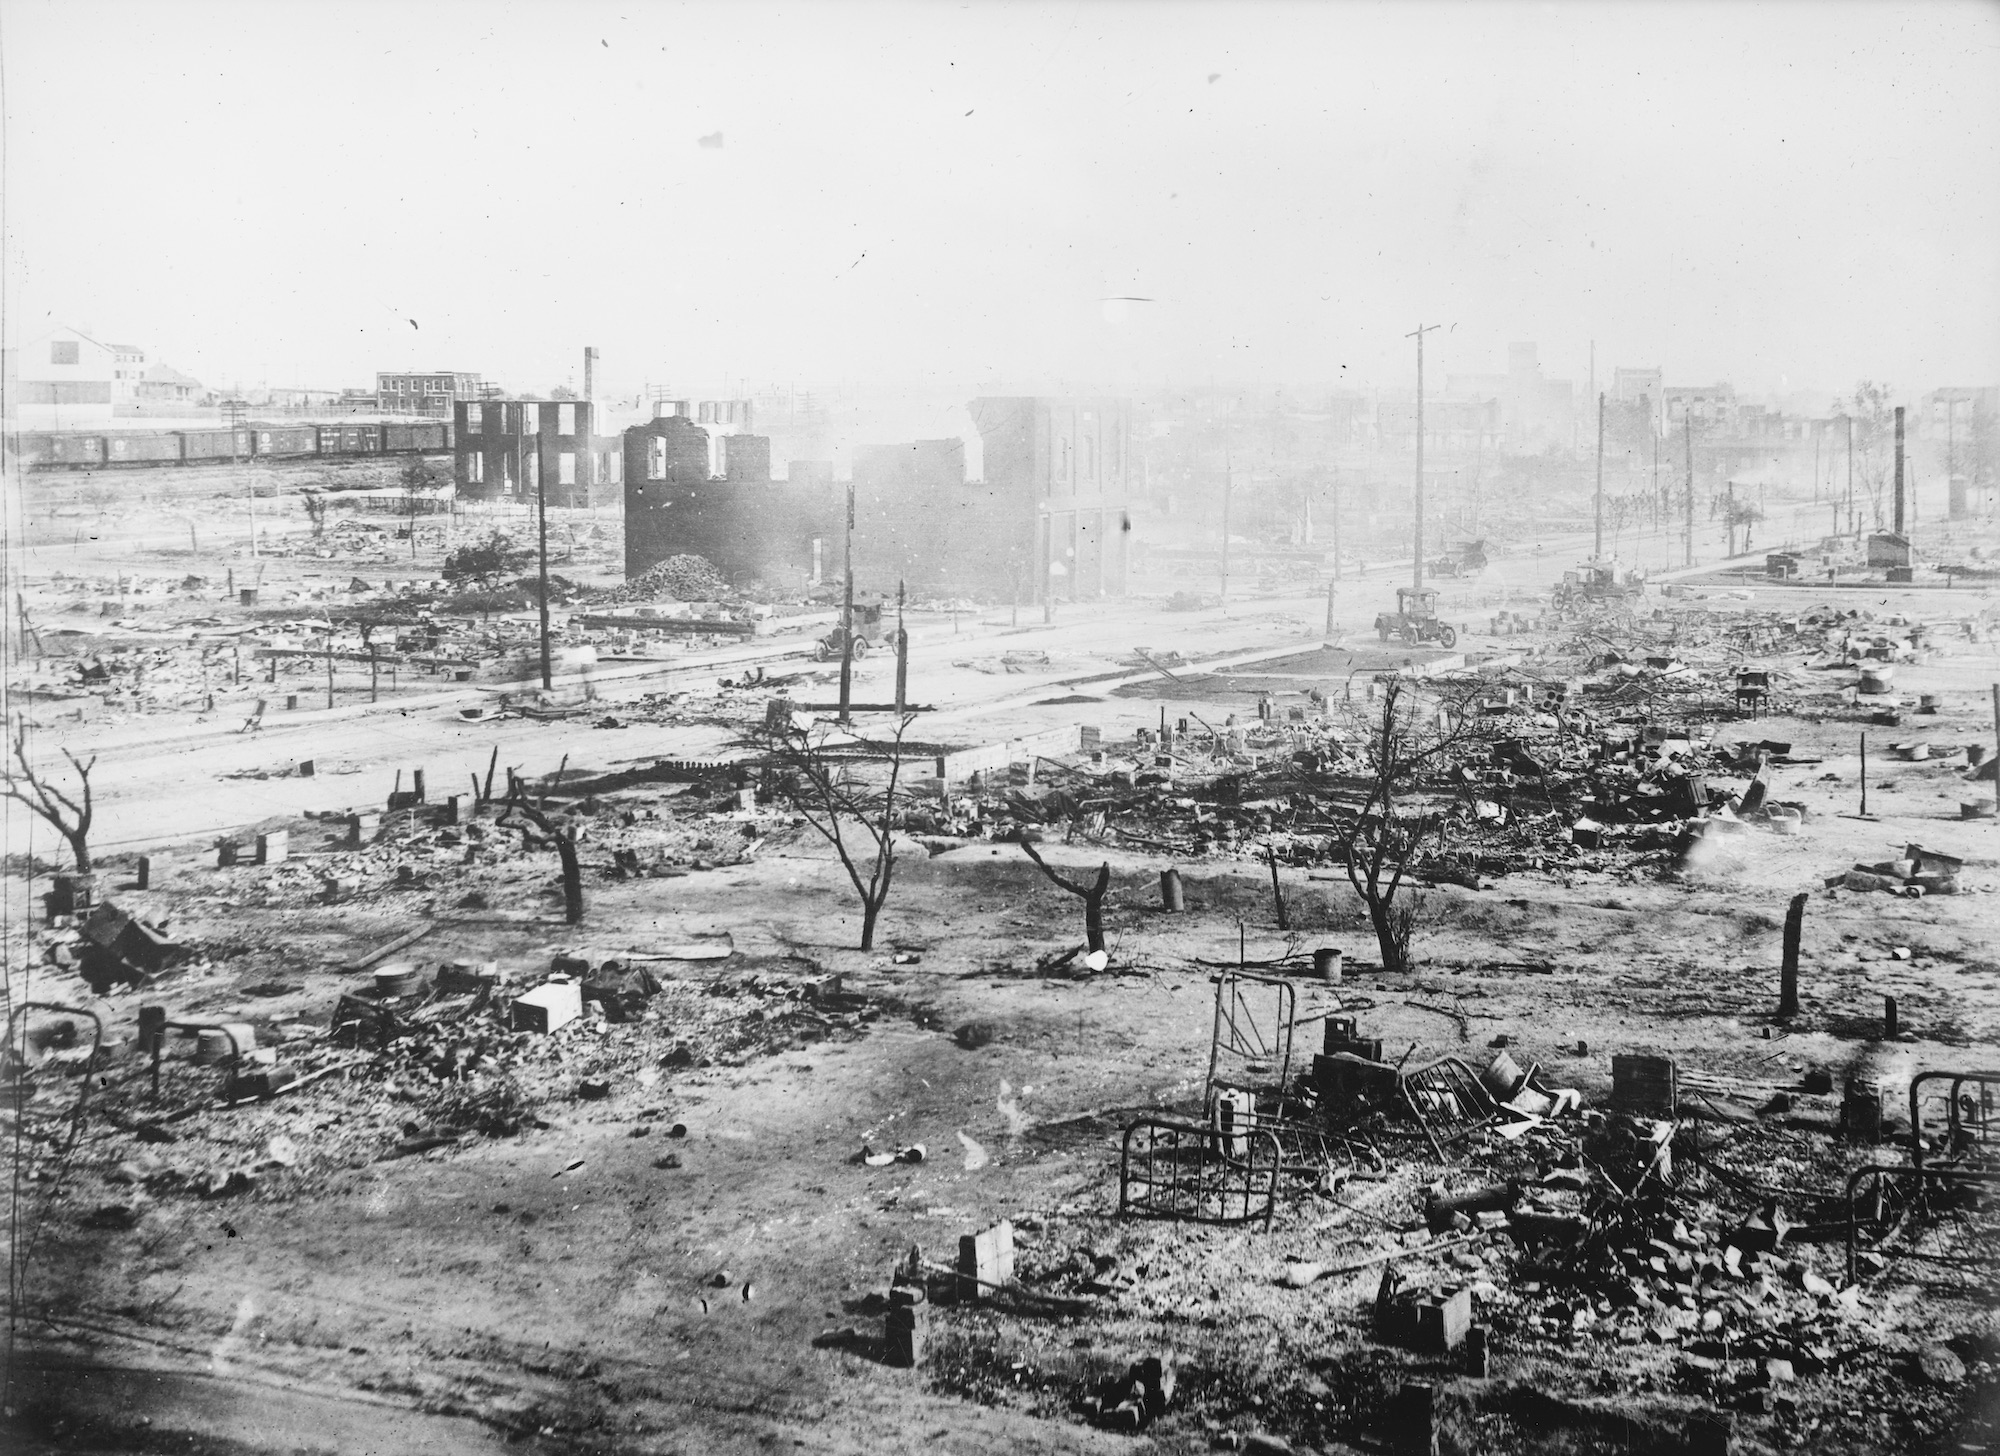 A photograph of Greenwood, Tulsa after the 1921 race massacre. Most of the buildings have been completely destroyed—burned to the ground—others are severely damaged. The air looks hazy with smoke, and you can see burnt remains of bed frames in the rubble.